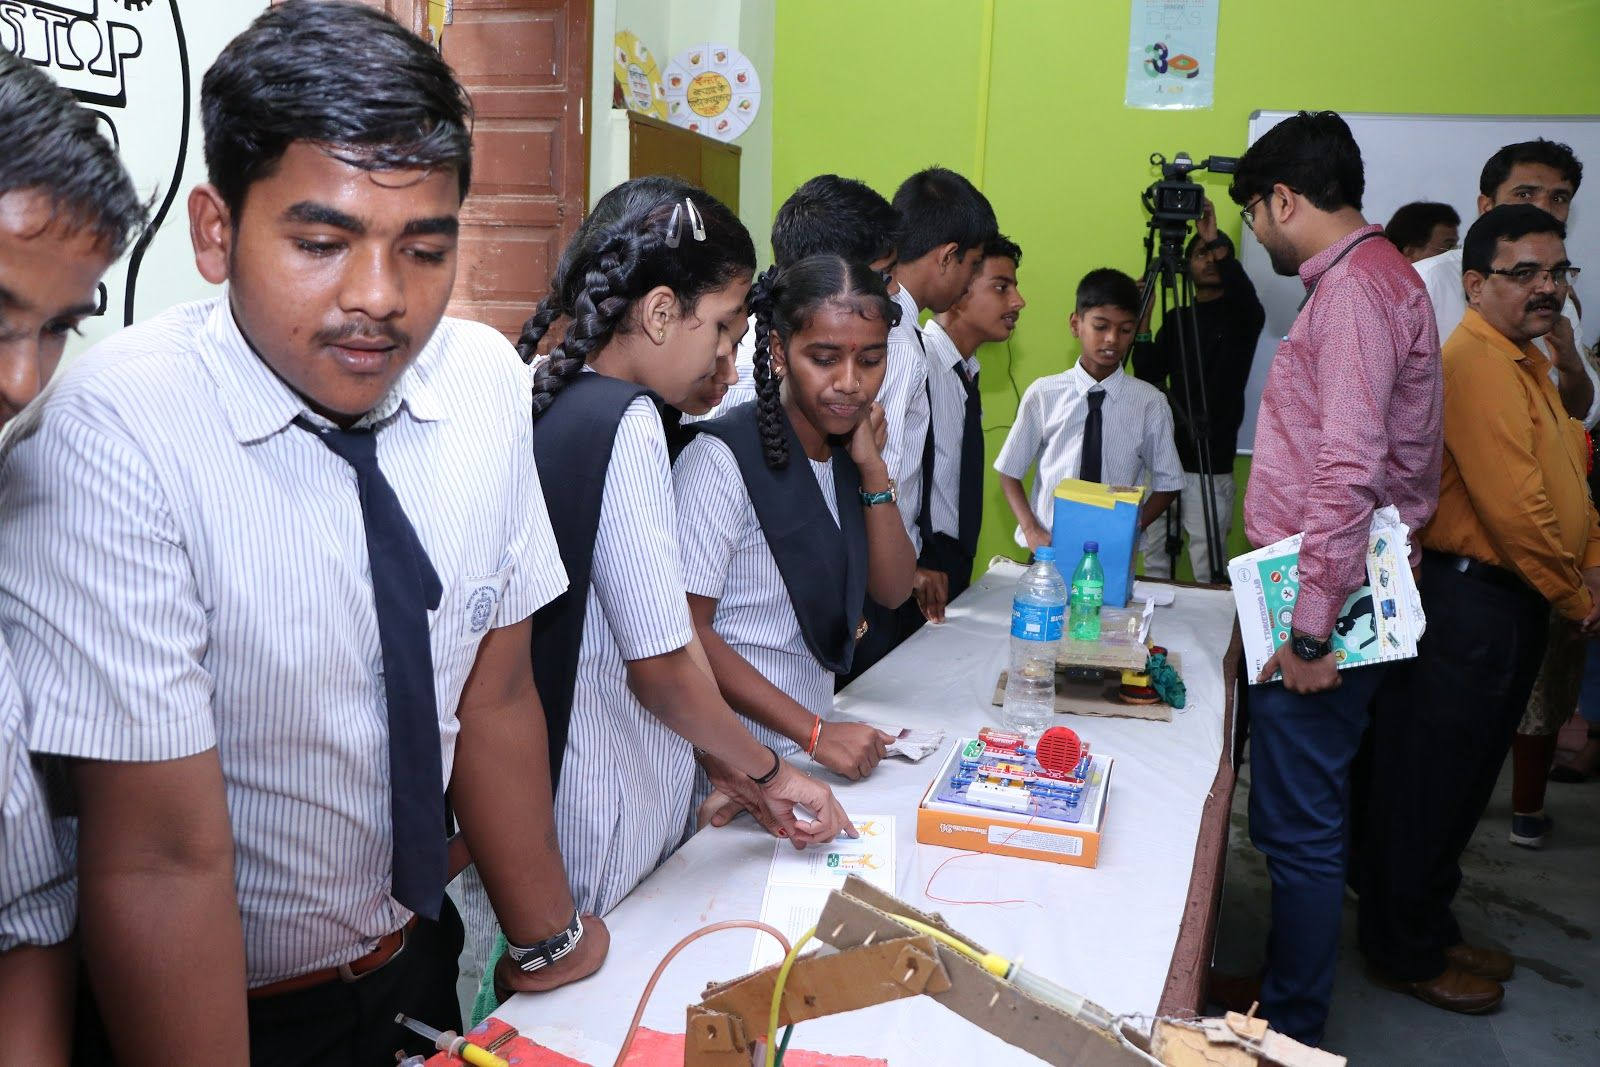 An exhibition of maker projects at a school in Borivali.